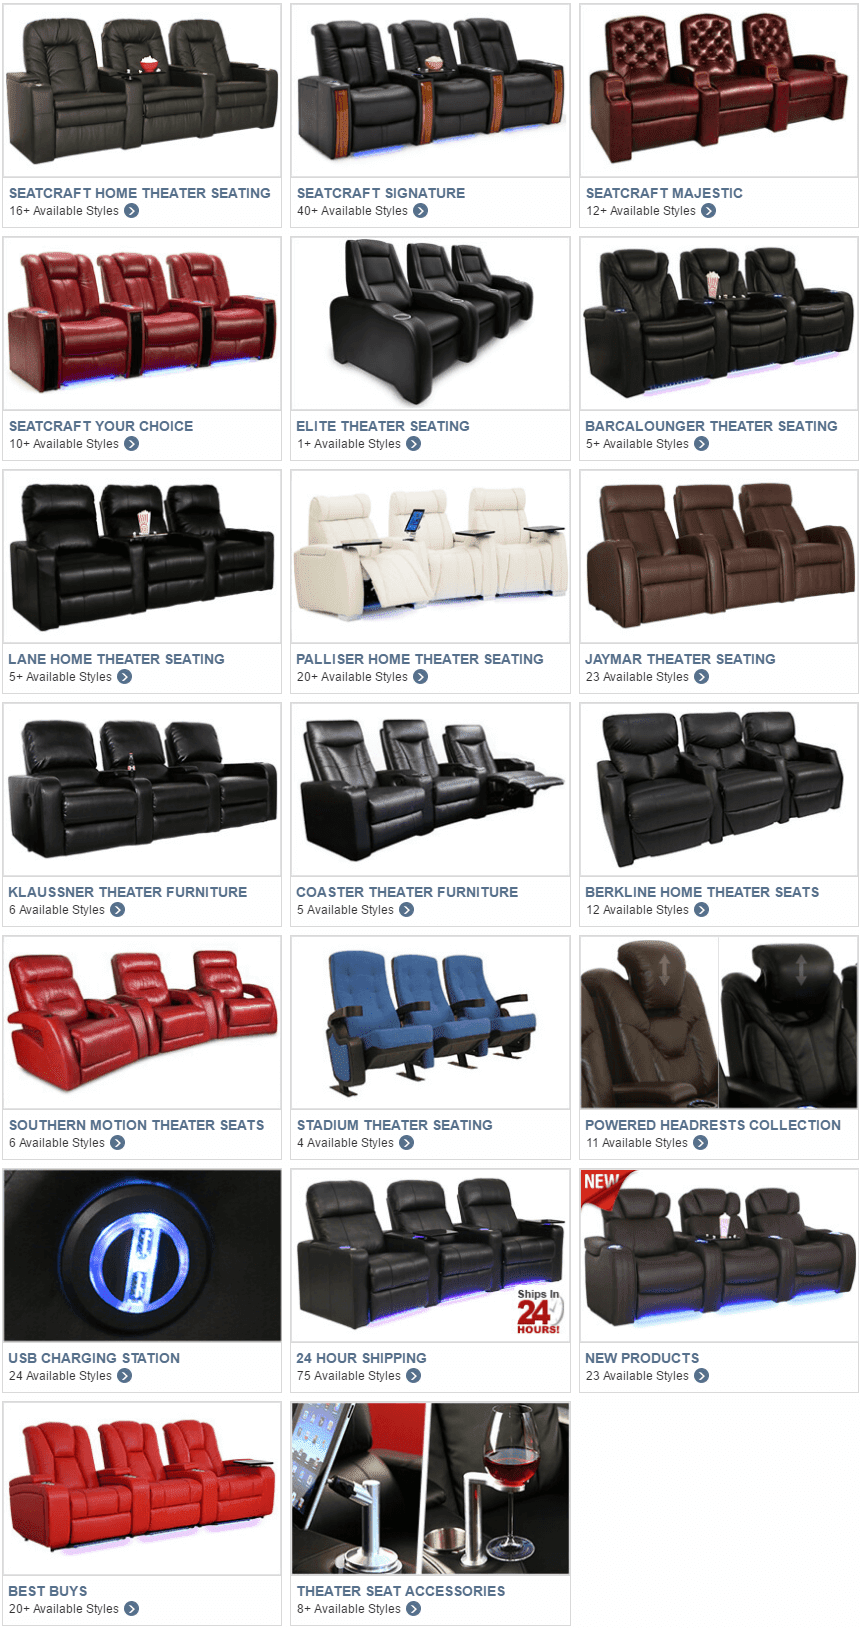 Home Theater Seating Collection